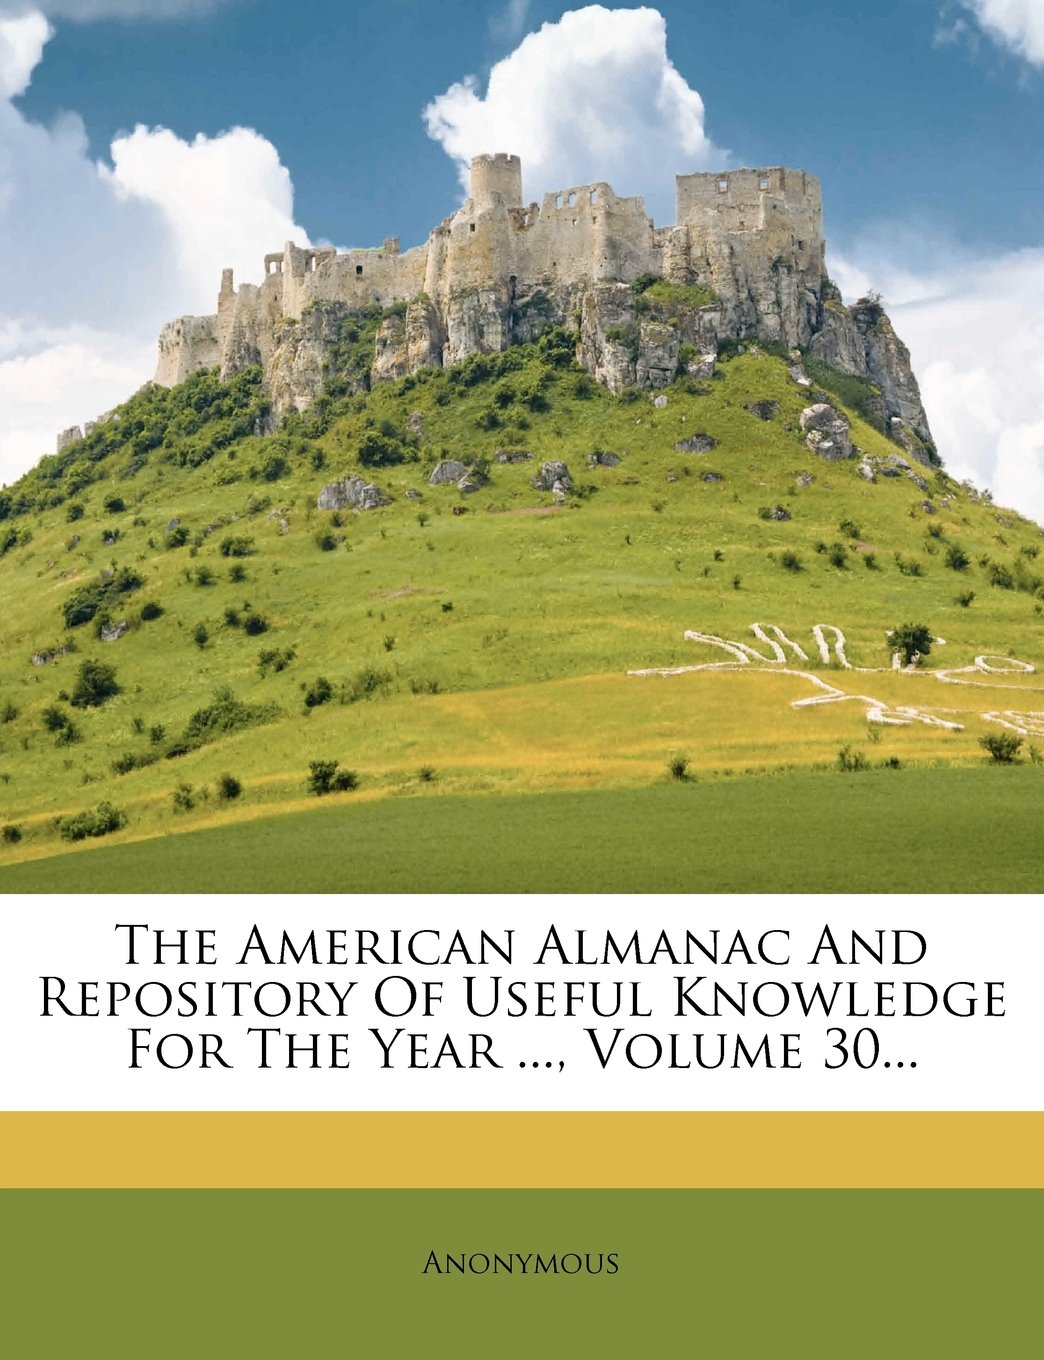 Download The American Almanac And Repository Of Useful Knowledge For The Year ..., Volume 30... PDF